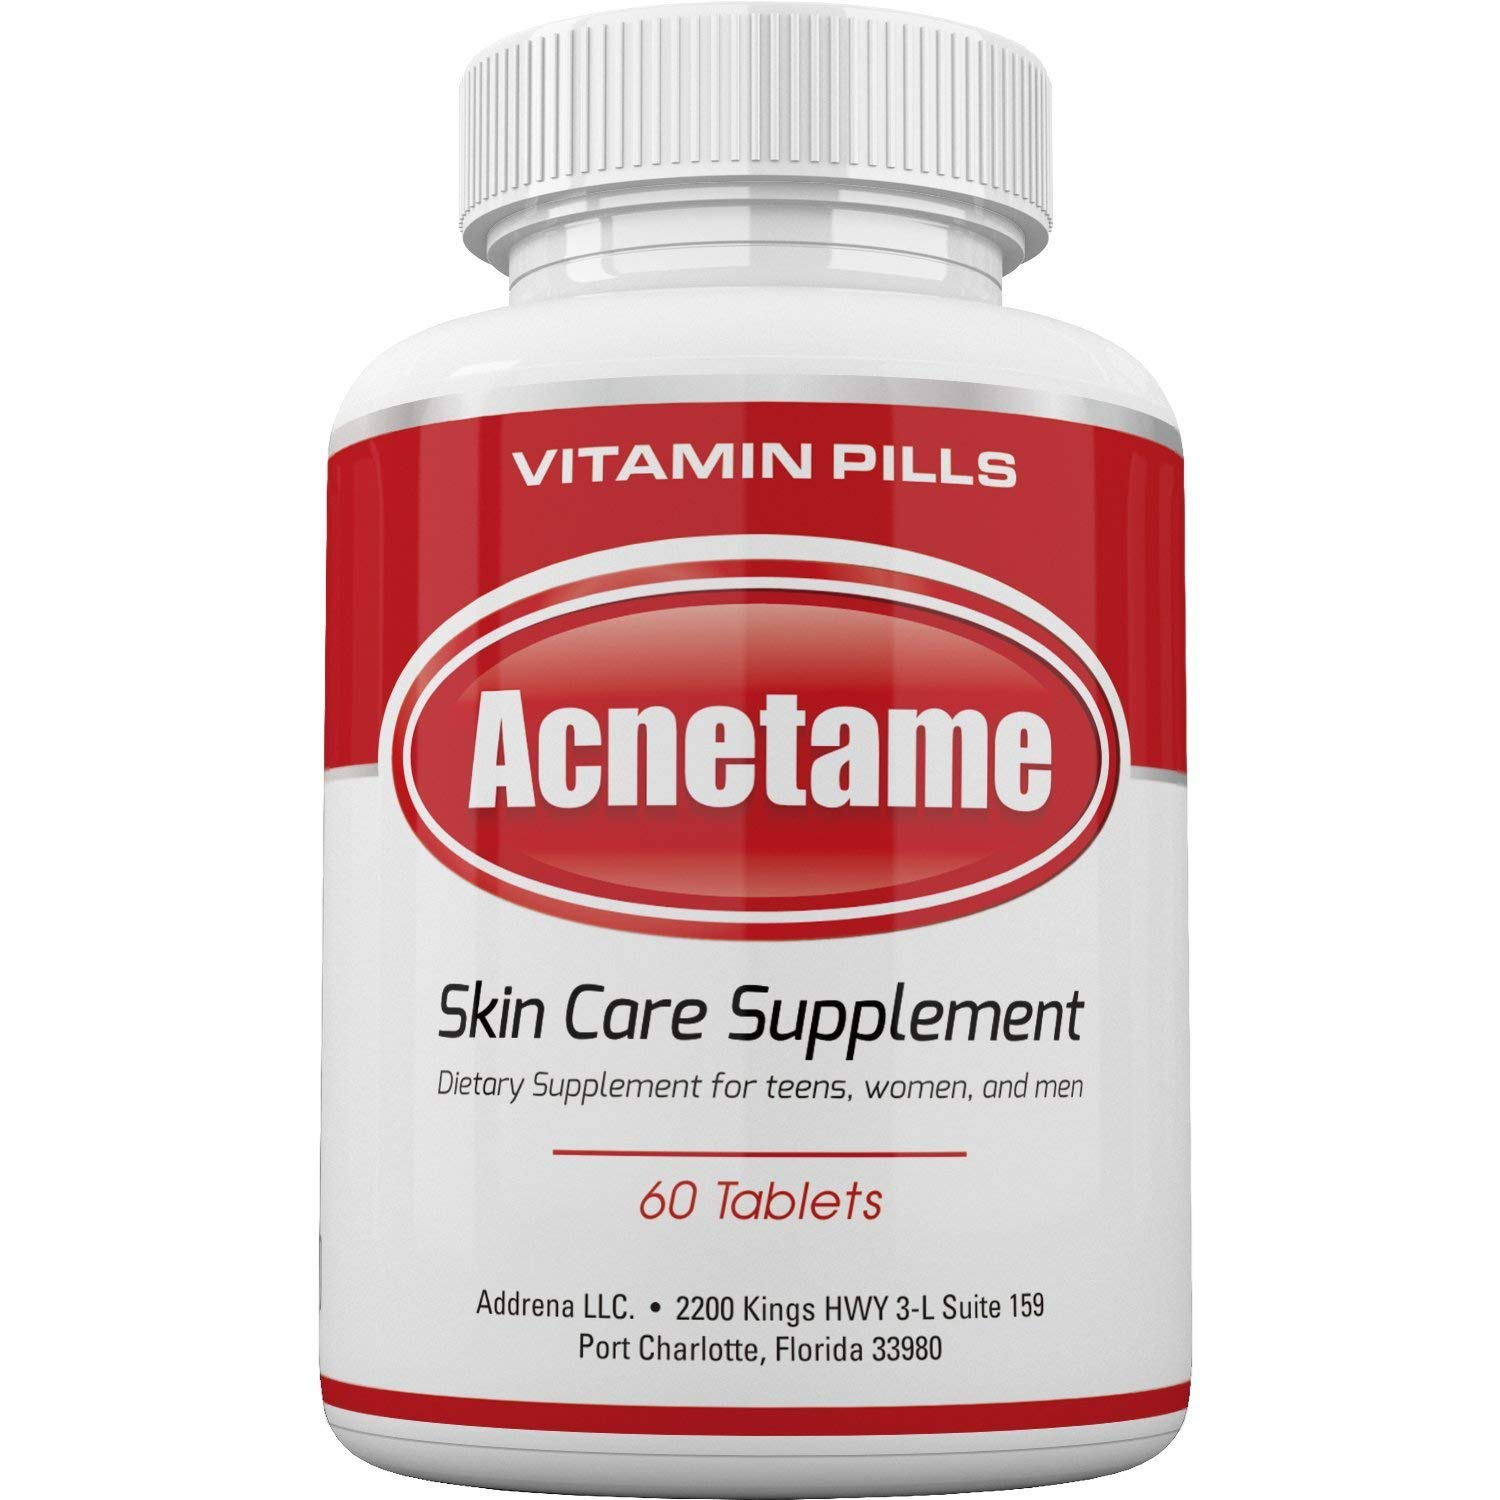 beauty supplements best-selling vitamins amazon acnetame acne treatment